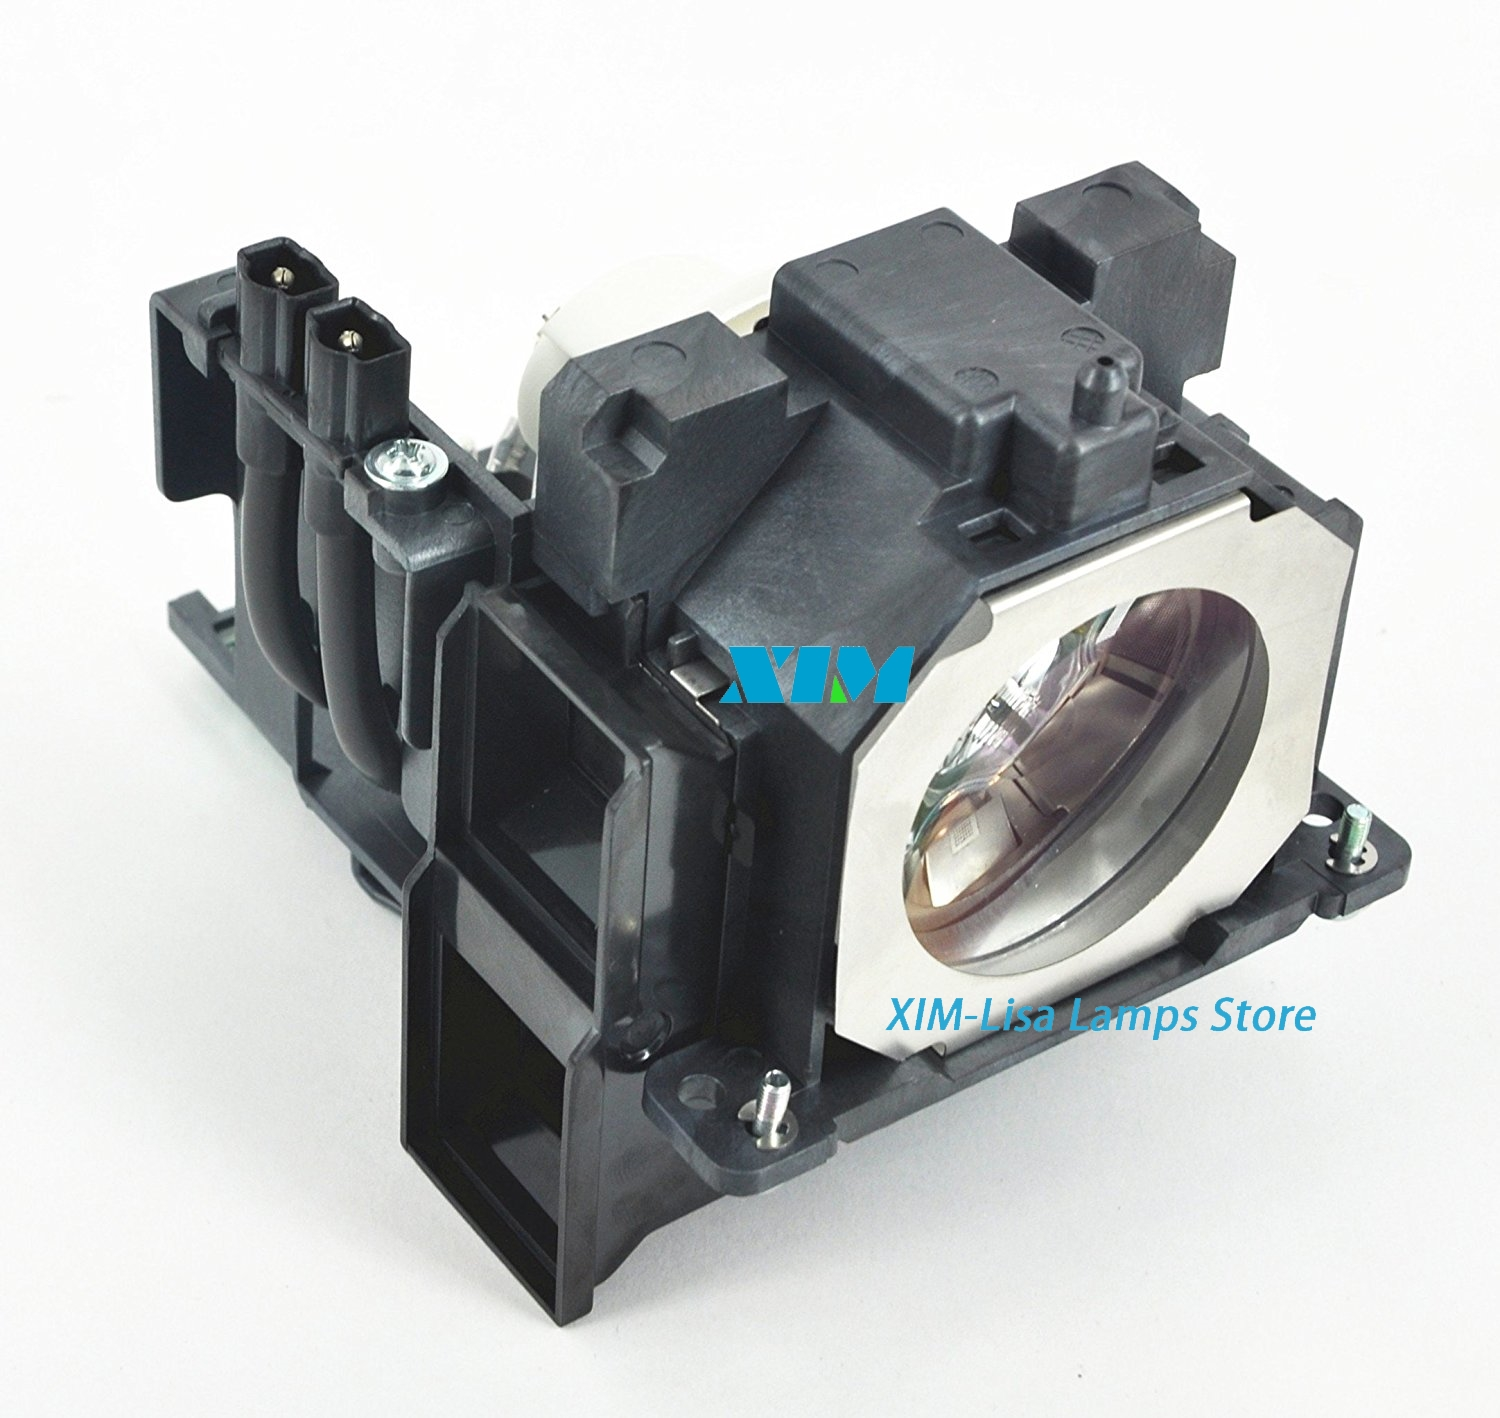 High Quality Replacement Projector lamp with housing ET-LAE300 For PT-EW540 PT-EZ770ZL PT-EX800Z PT-EX800ZL PT-EW730Z PT-EW730Z et lac300 replacement projector lamp with housing for panasonic pt cw331re pt cw241re pt cx301re pt cw330 pt cw331r